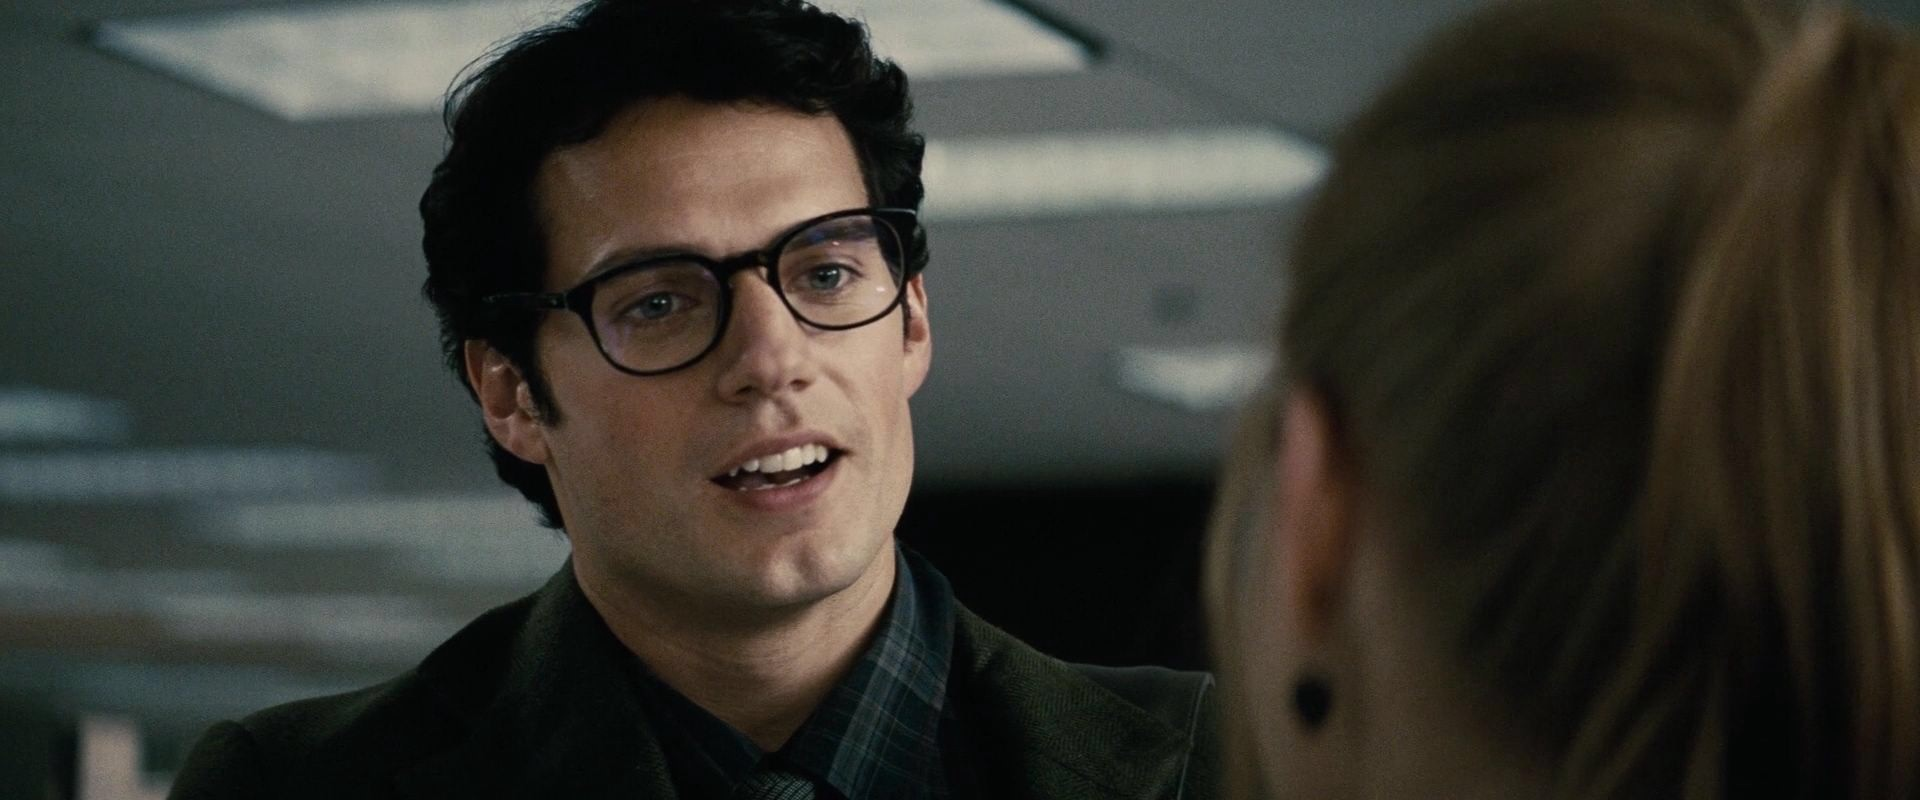 Clark kent quotes inspirational quotesgram for Kent superman